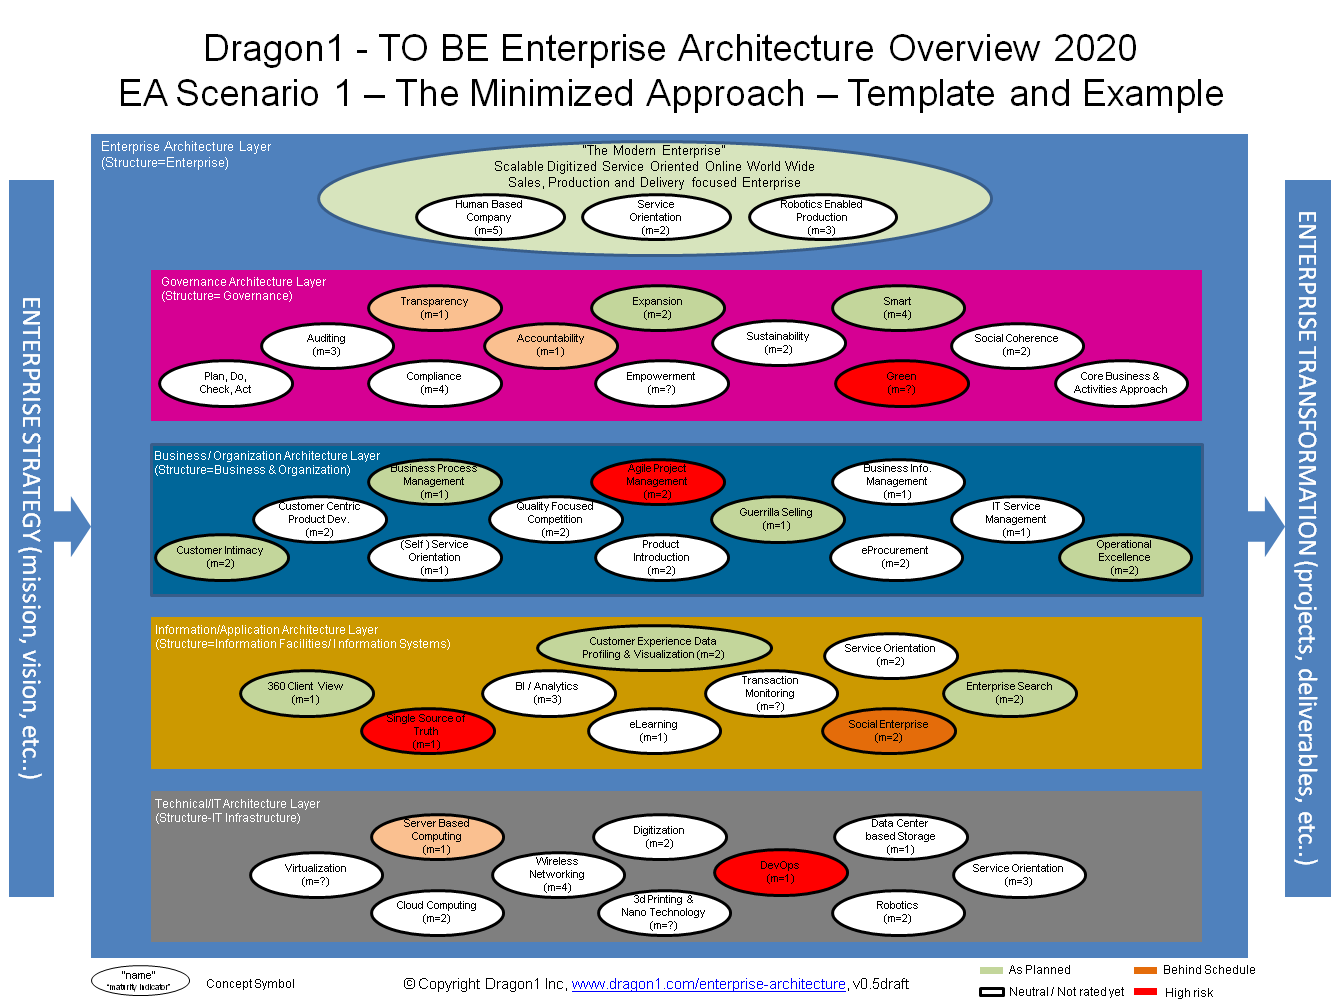 Enterprise architecture overview example and template dragon1 flashek Choice Image